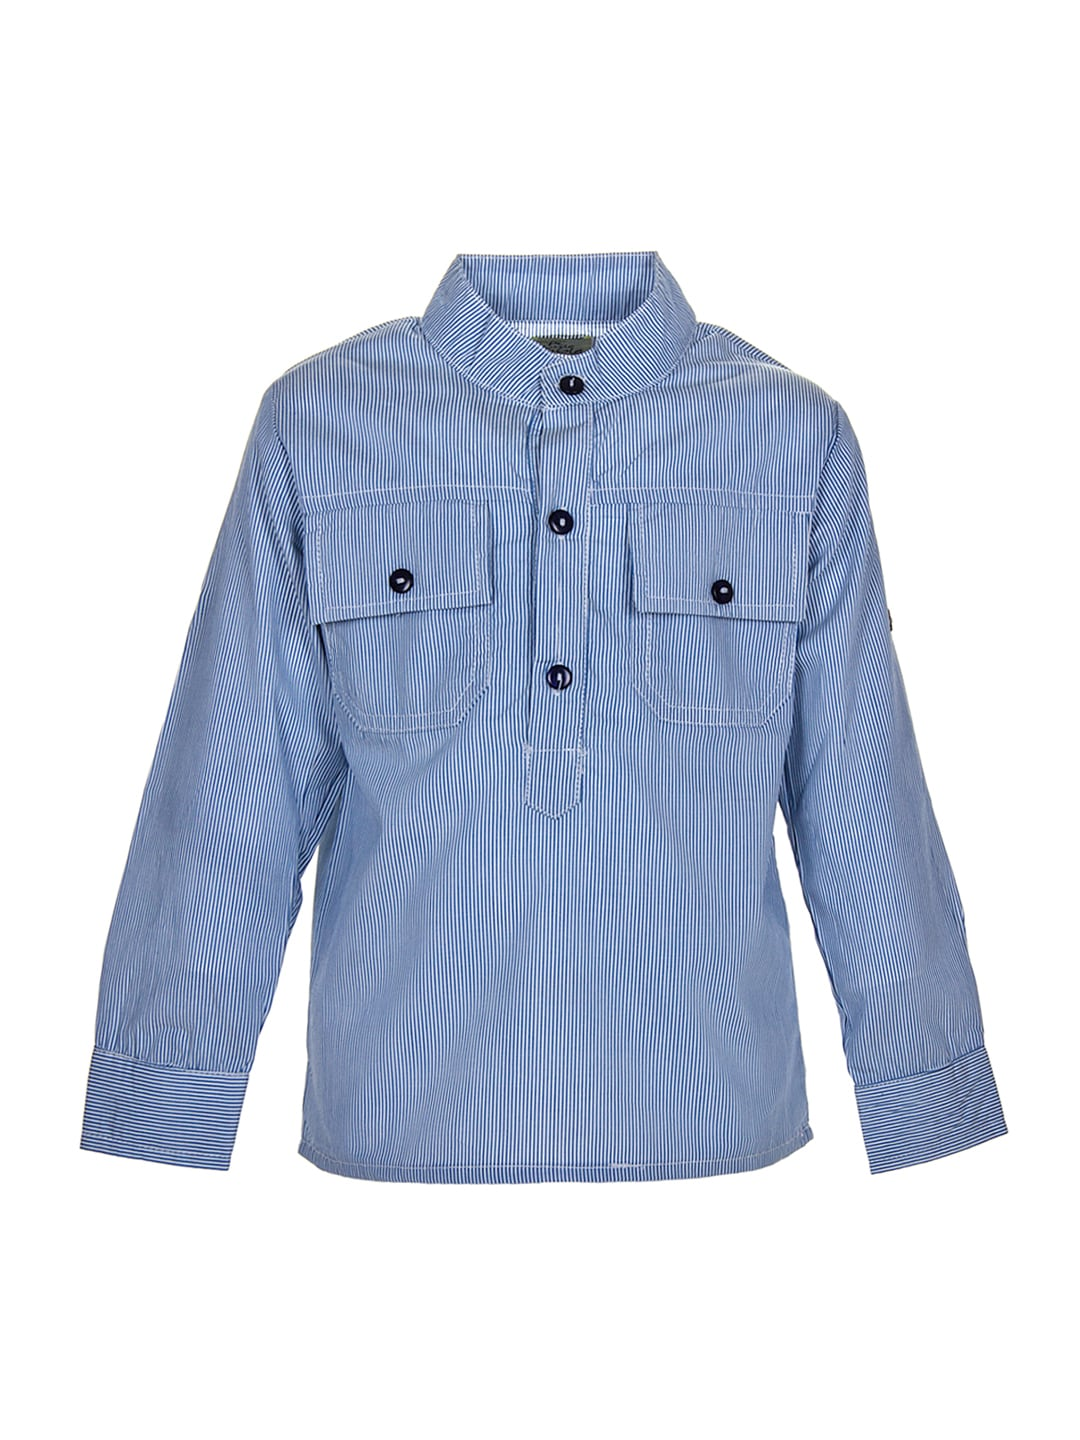 A Little Fable Boys Blue Striped Casual Shirt